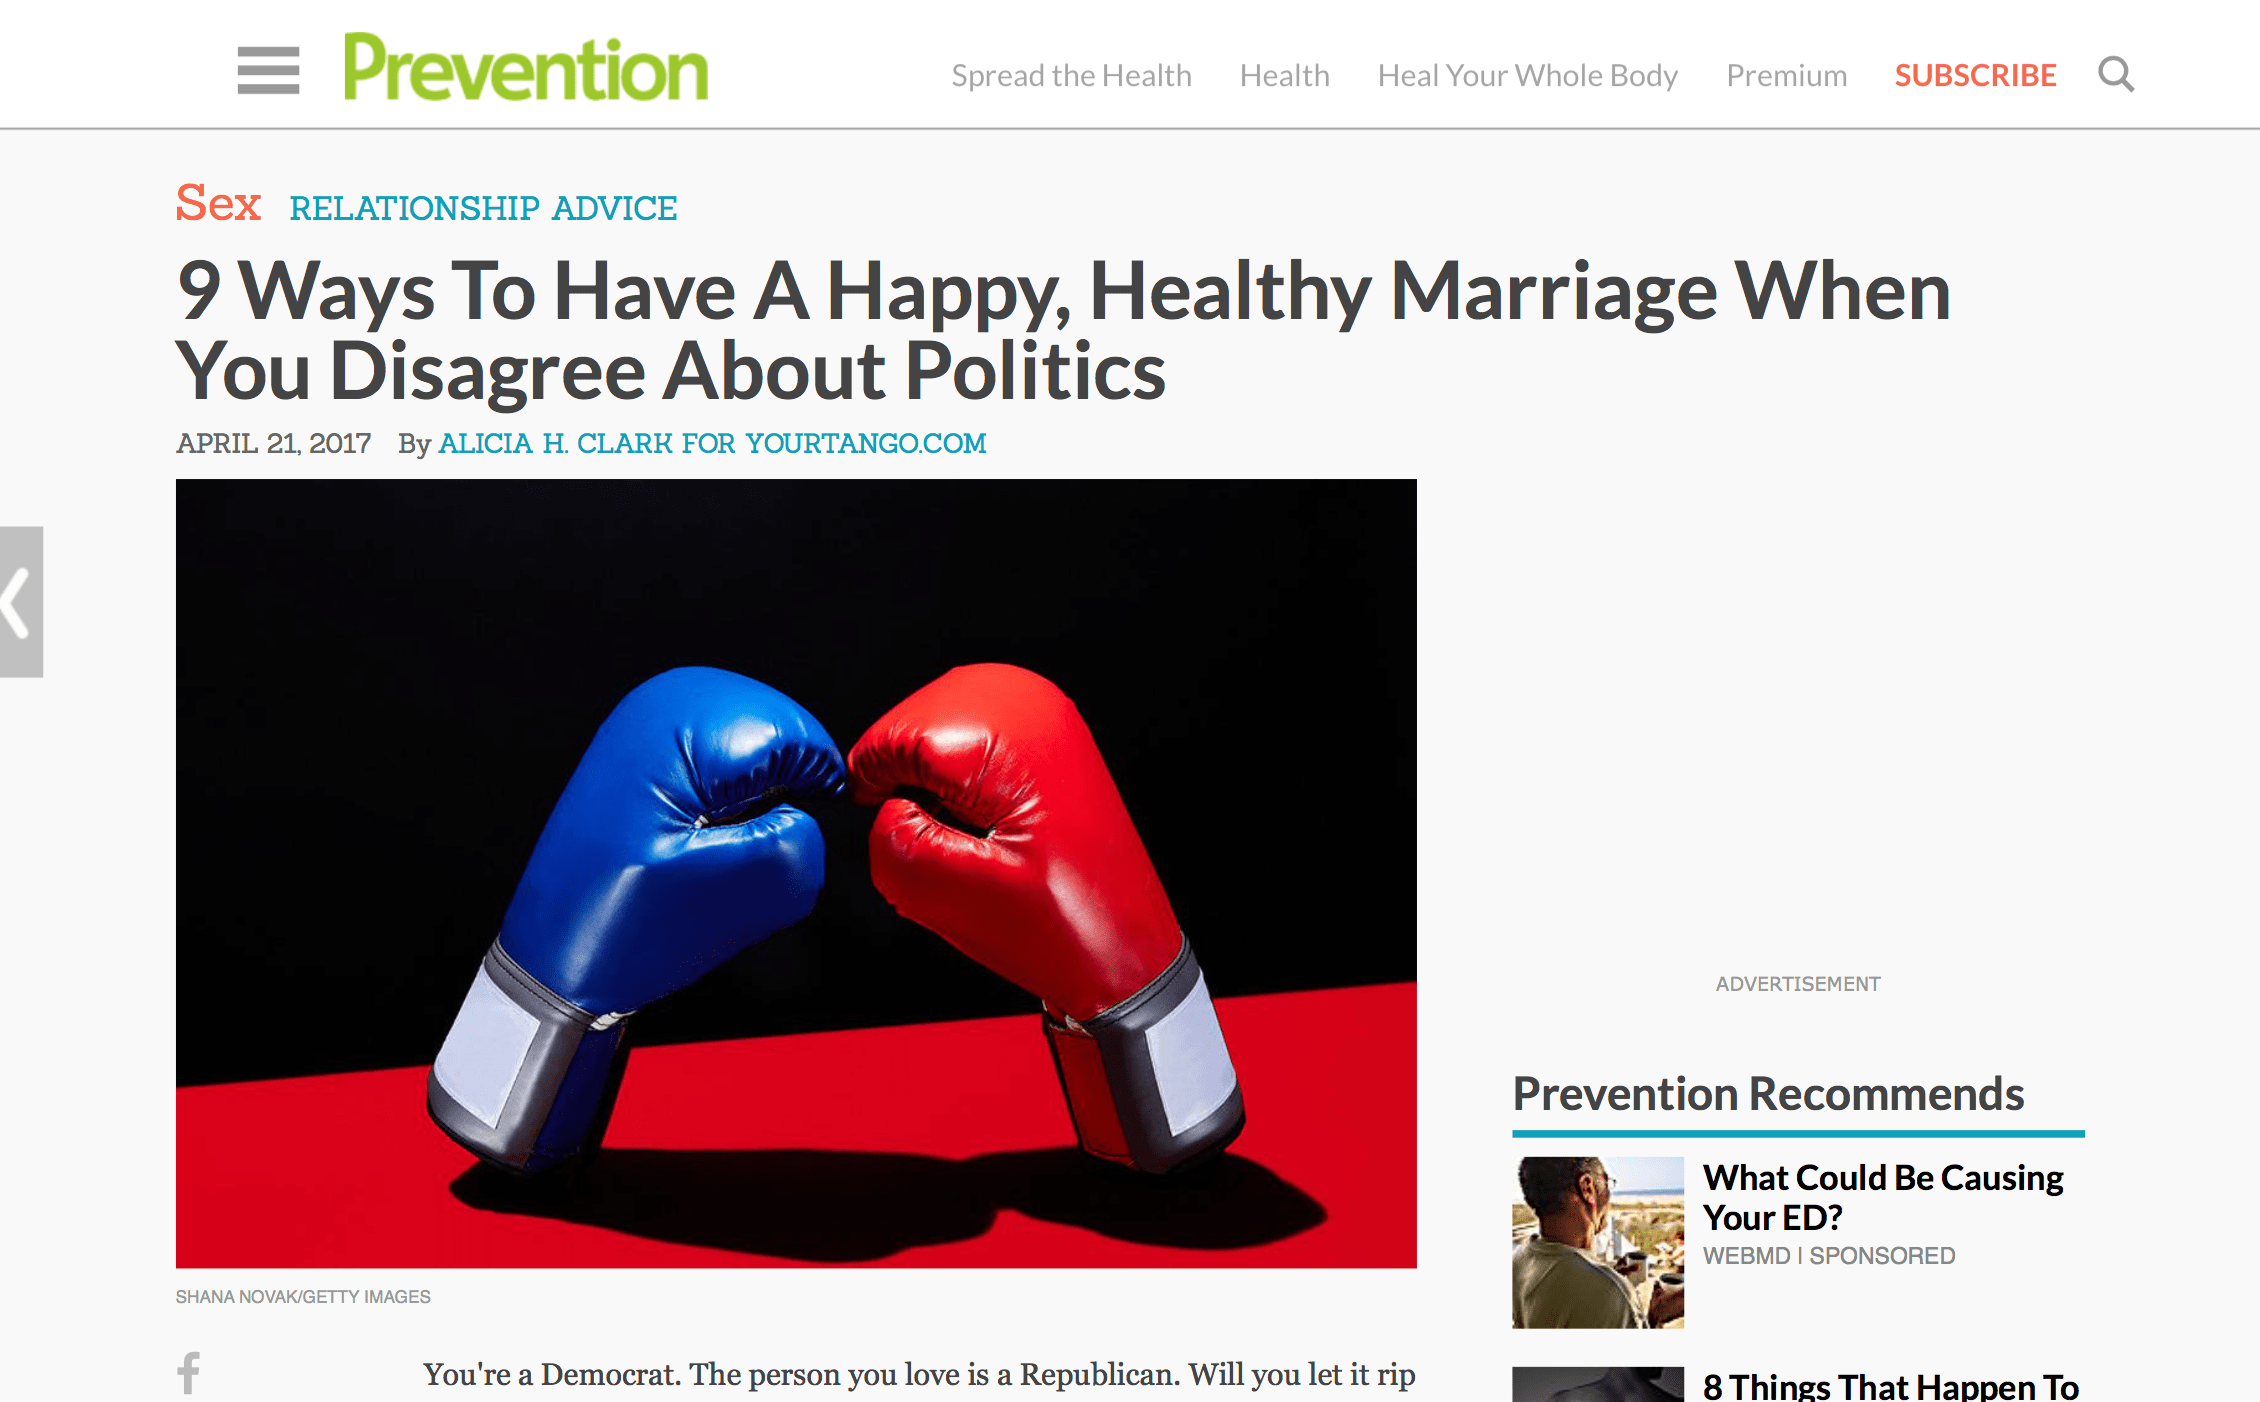 9 Ways To Have A Happy, Healthy Marriage When You Disagree About Politics